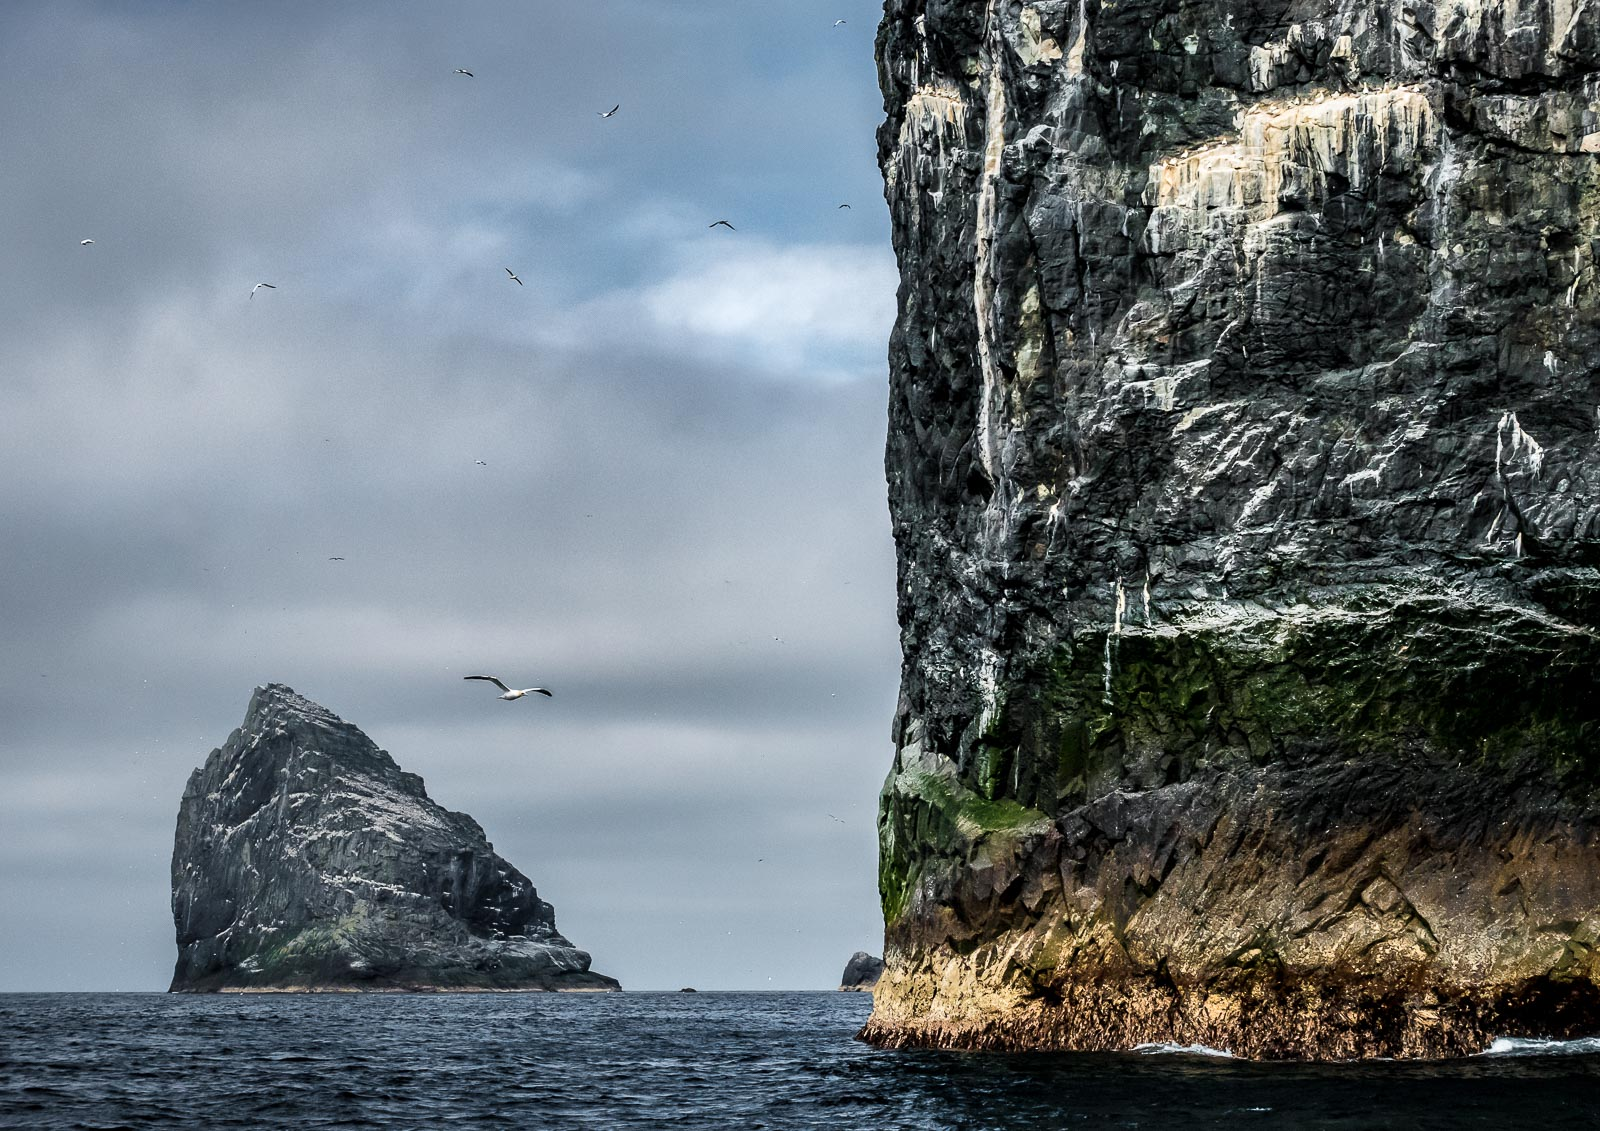 Stac Lee (foreground) and Stac an Armin (background). Stac an Armin is the highest sea stack in the British Isles.  Lumix GM5 12-32mm f3.5-5.6 at 32mm. 1/2500sec f8 ISO 1000